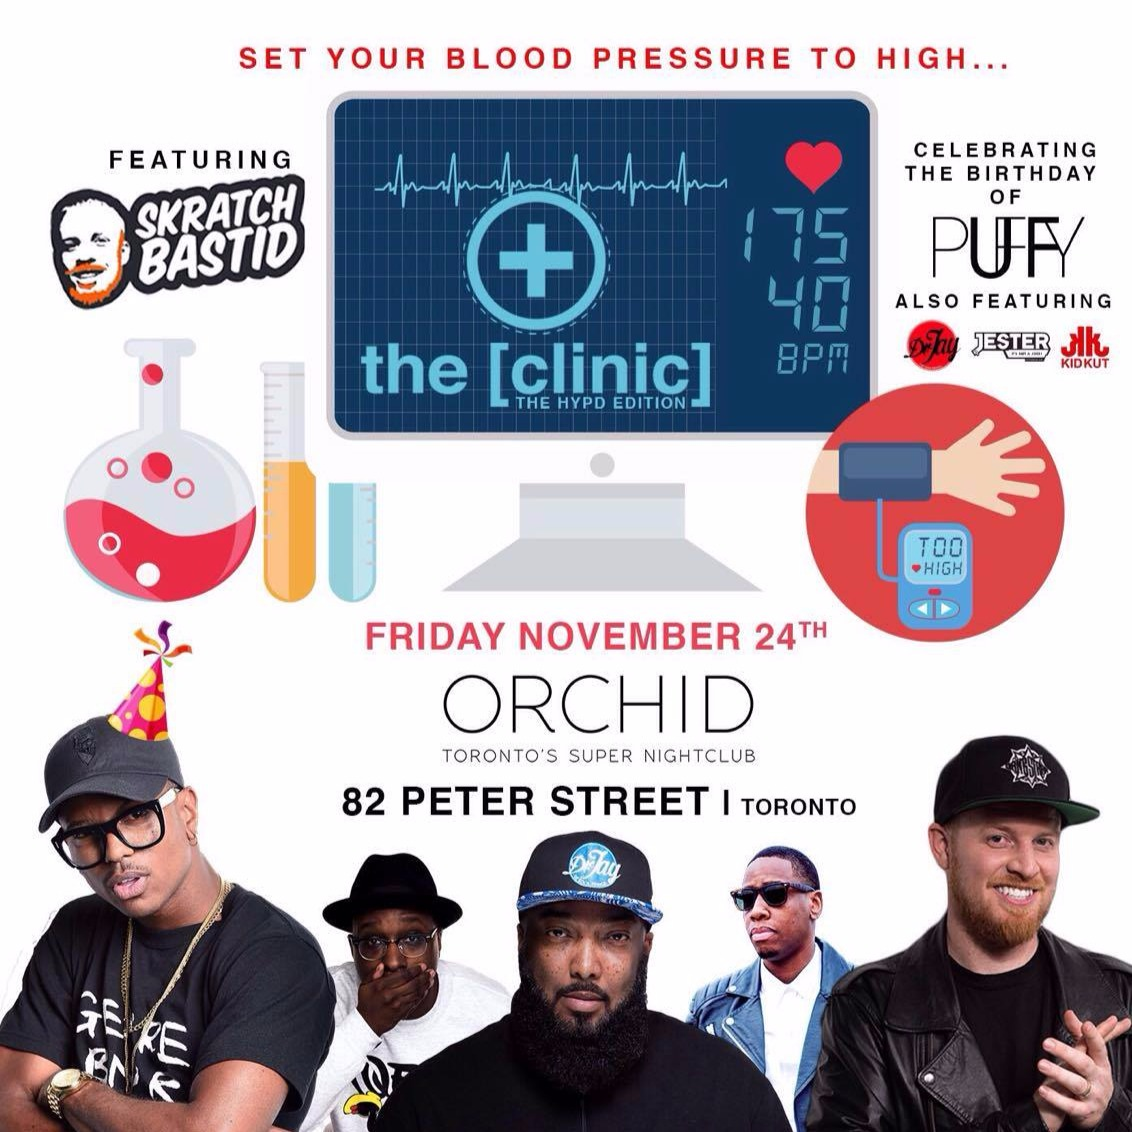 The Clinic at Orchid